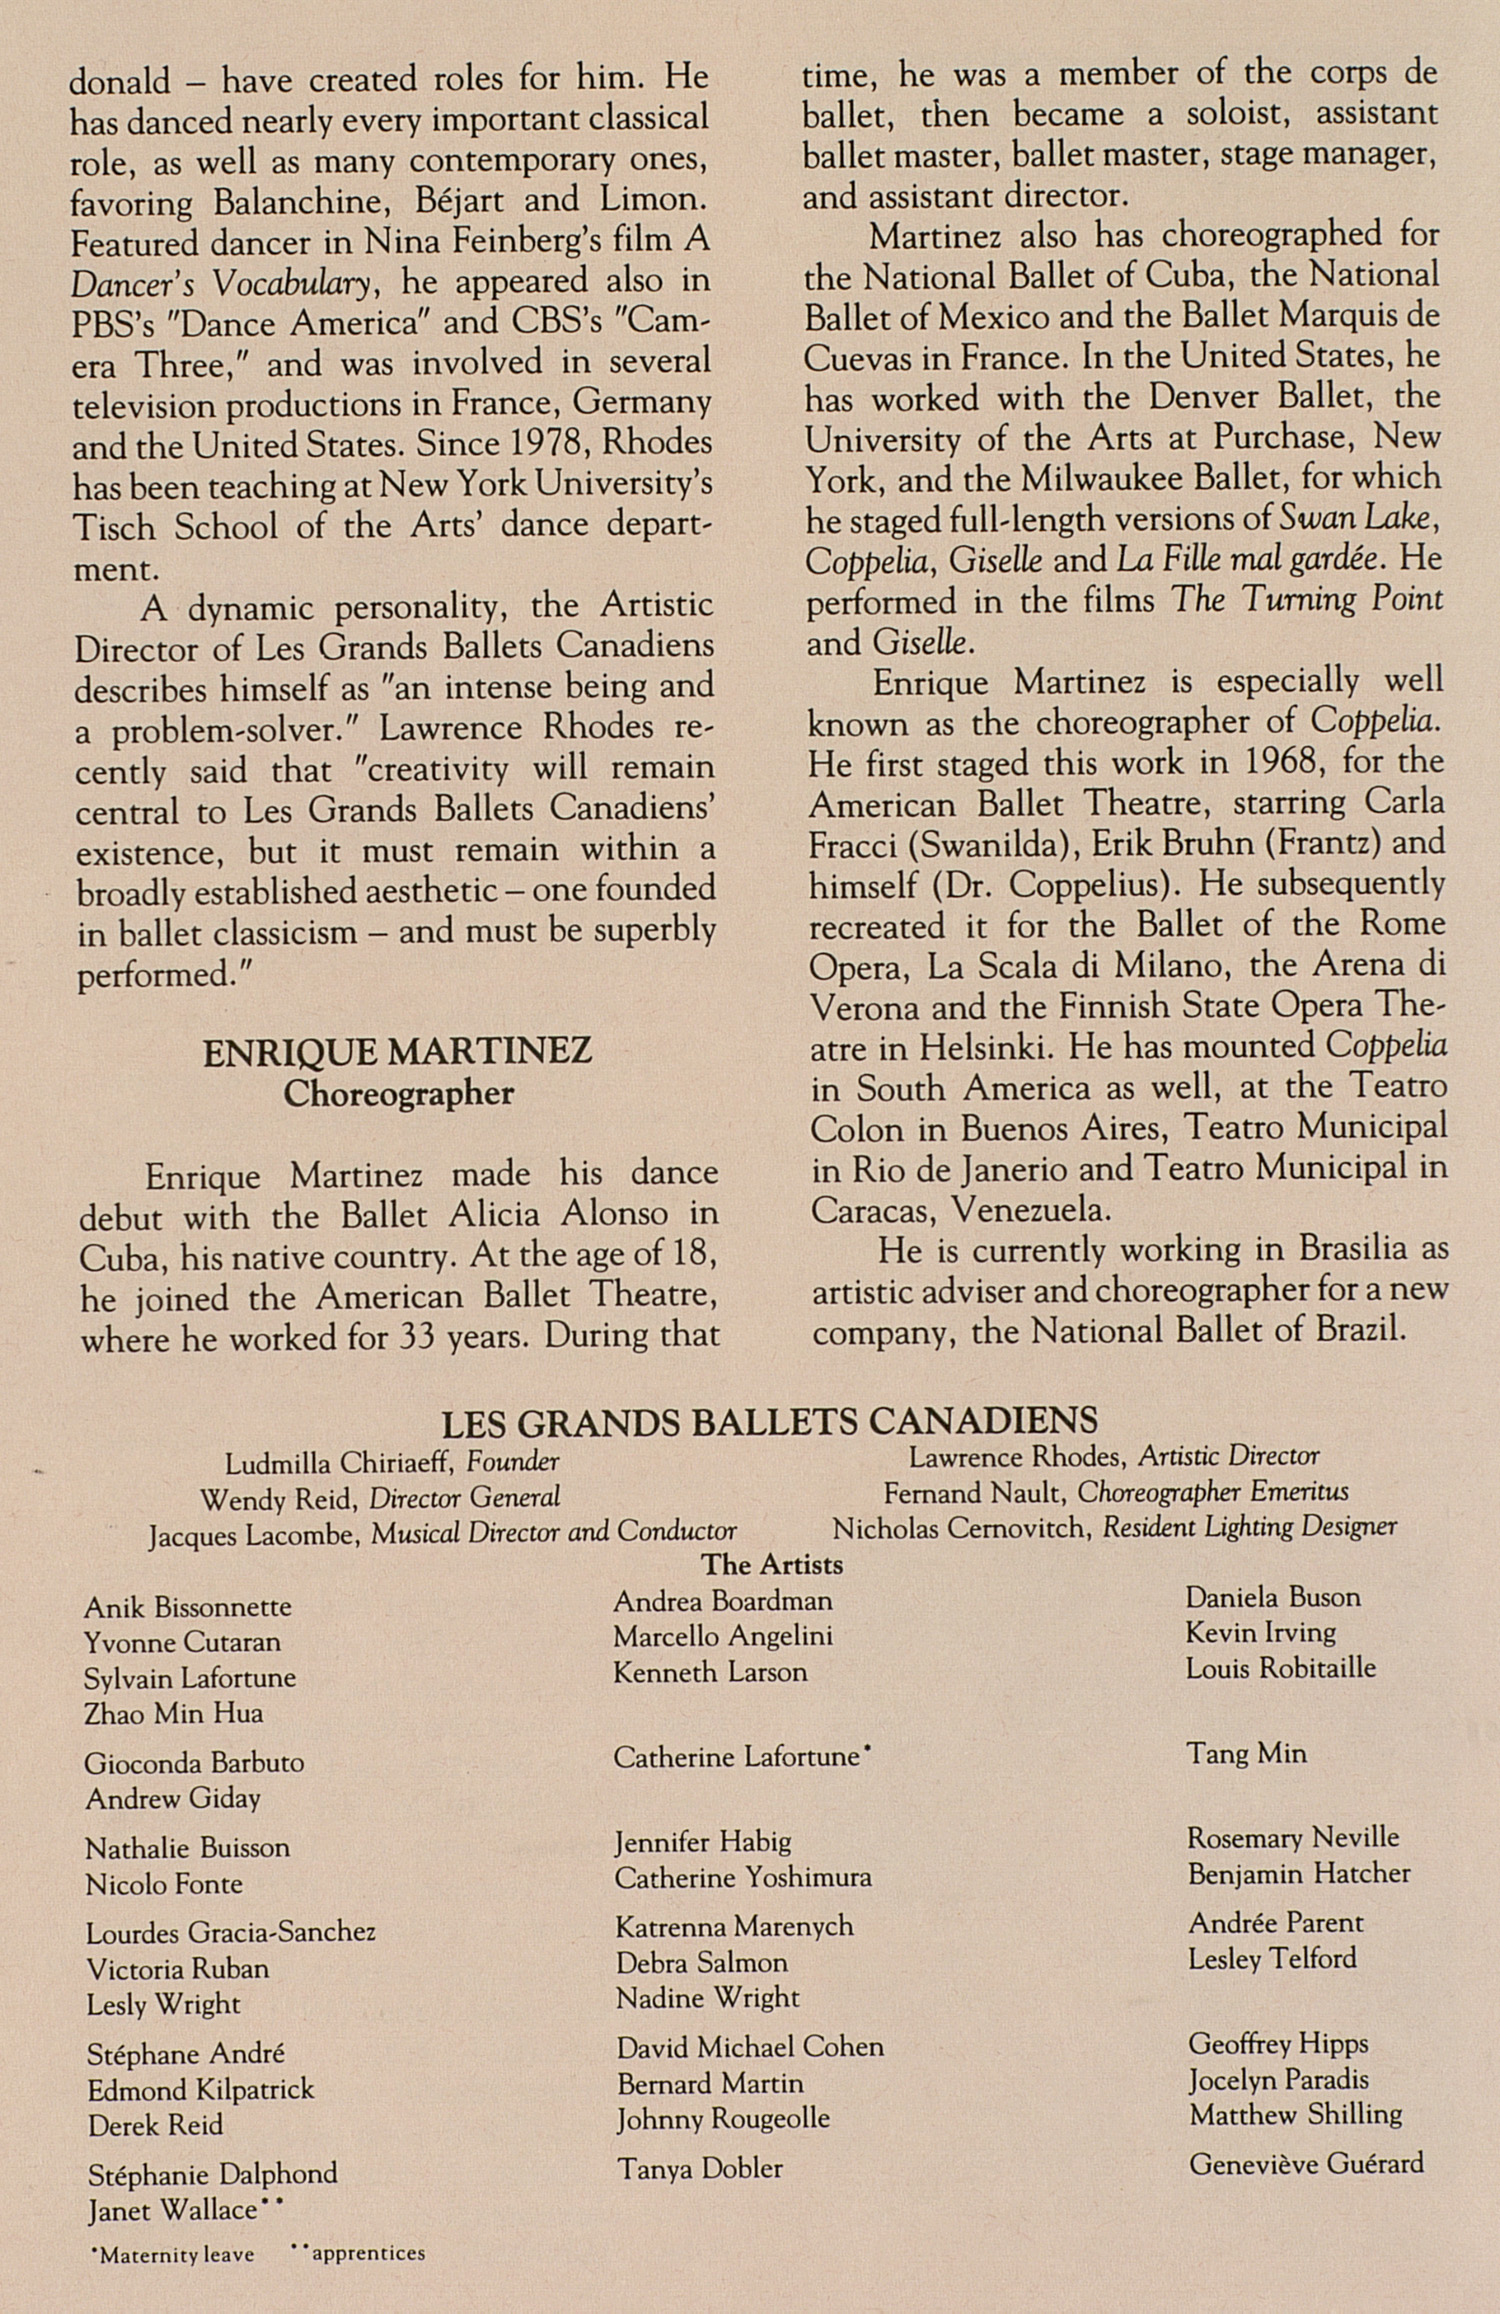 UMS Concert Program, October 17-18, 1992: Les Grands Ballets Canadiens --  image